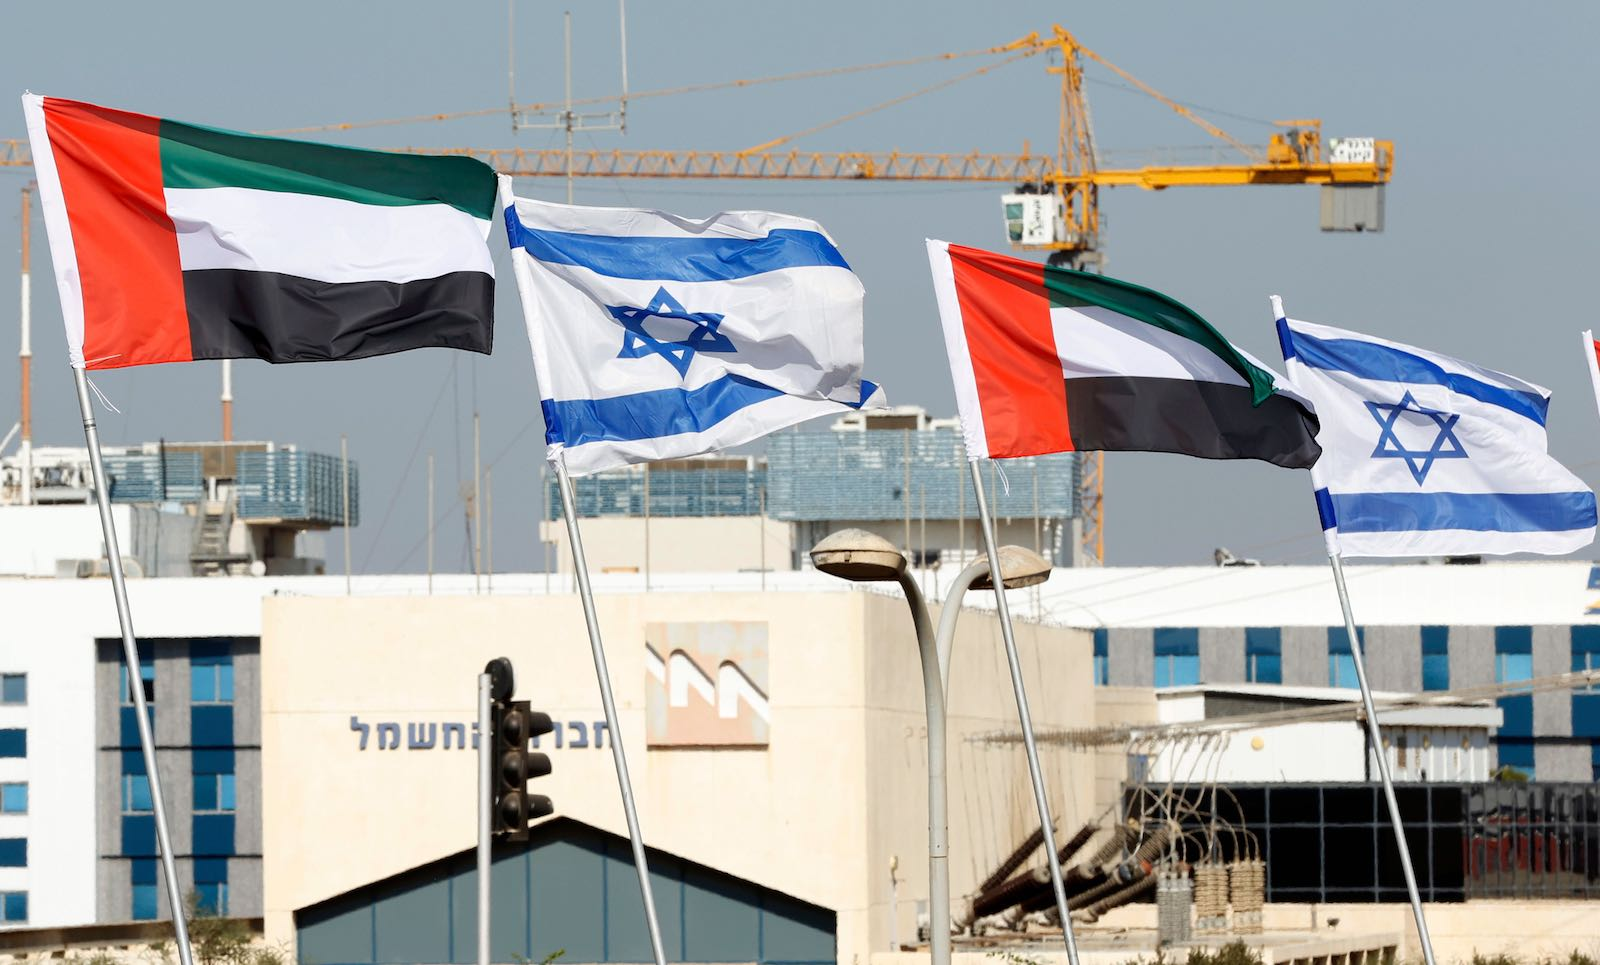 Israeli and United Arab Emirates flags line a road in the Israeli city of Netanya, 16 August 2020 (Jack Guez/AFP via Getty Images)